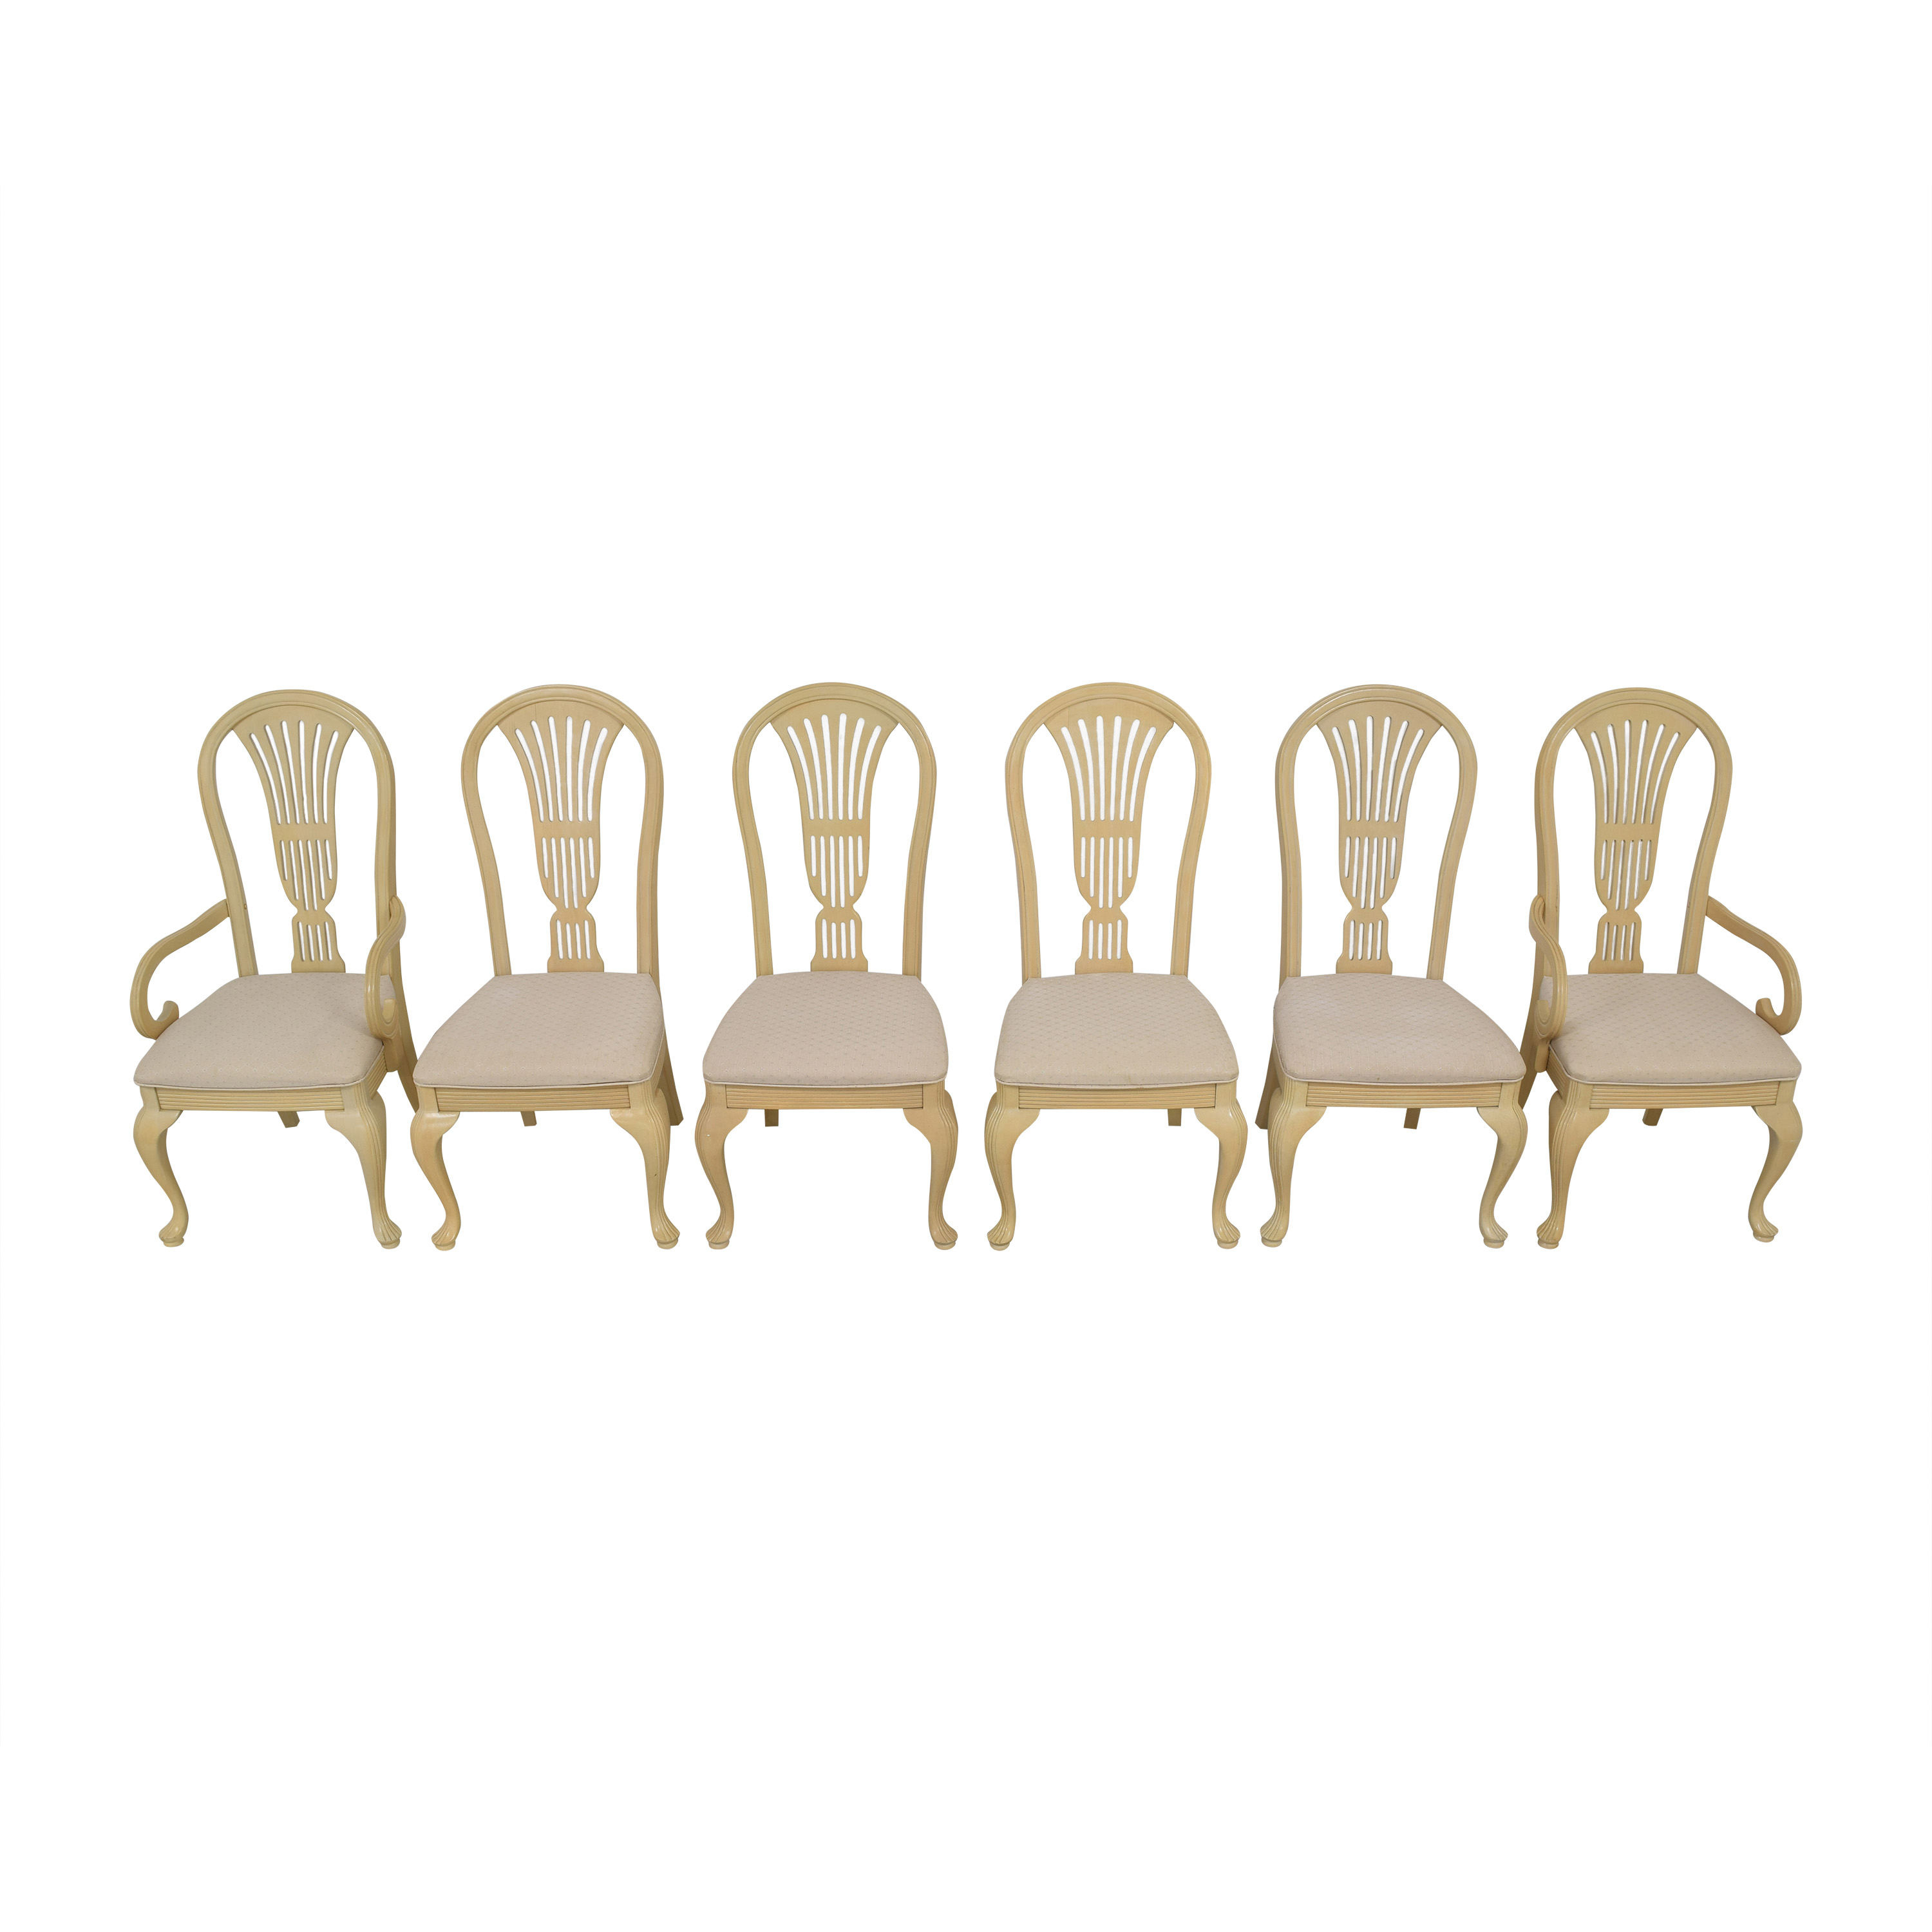 Universal Furniture Universal Furniture Upholstered Dining Chairs ta and beige